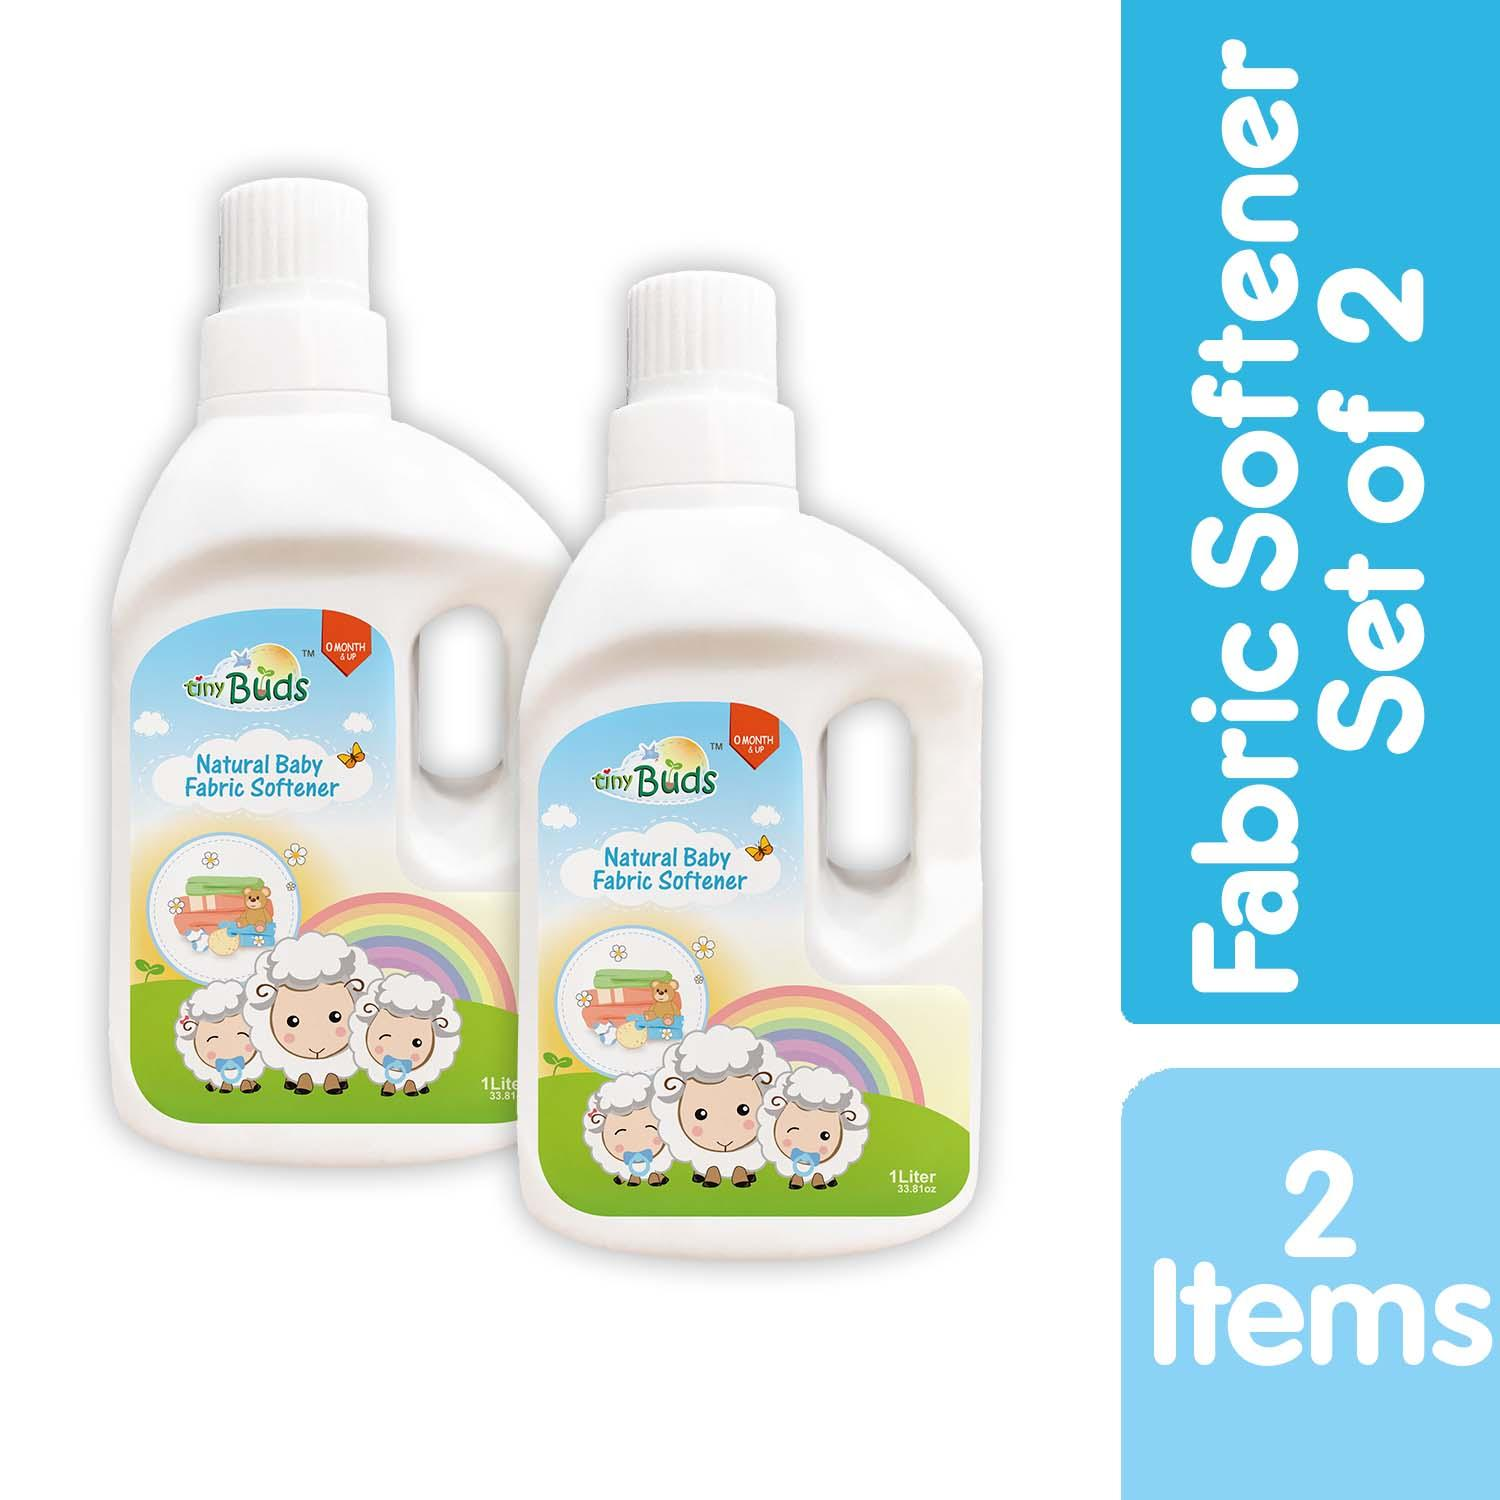 Fabric Conditioners brands Fabric Softener on sale prices set